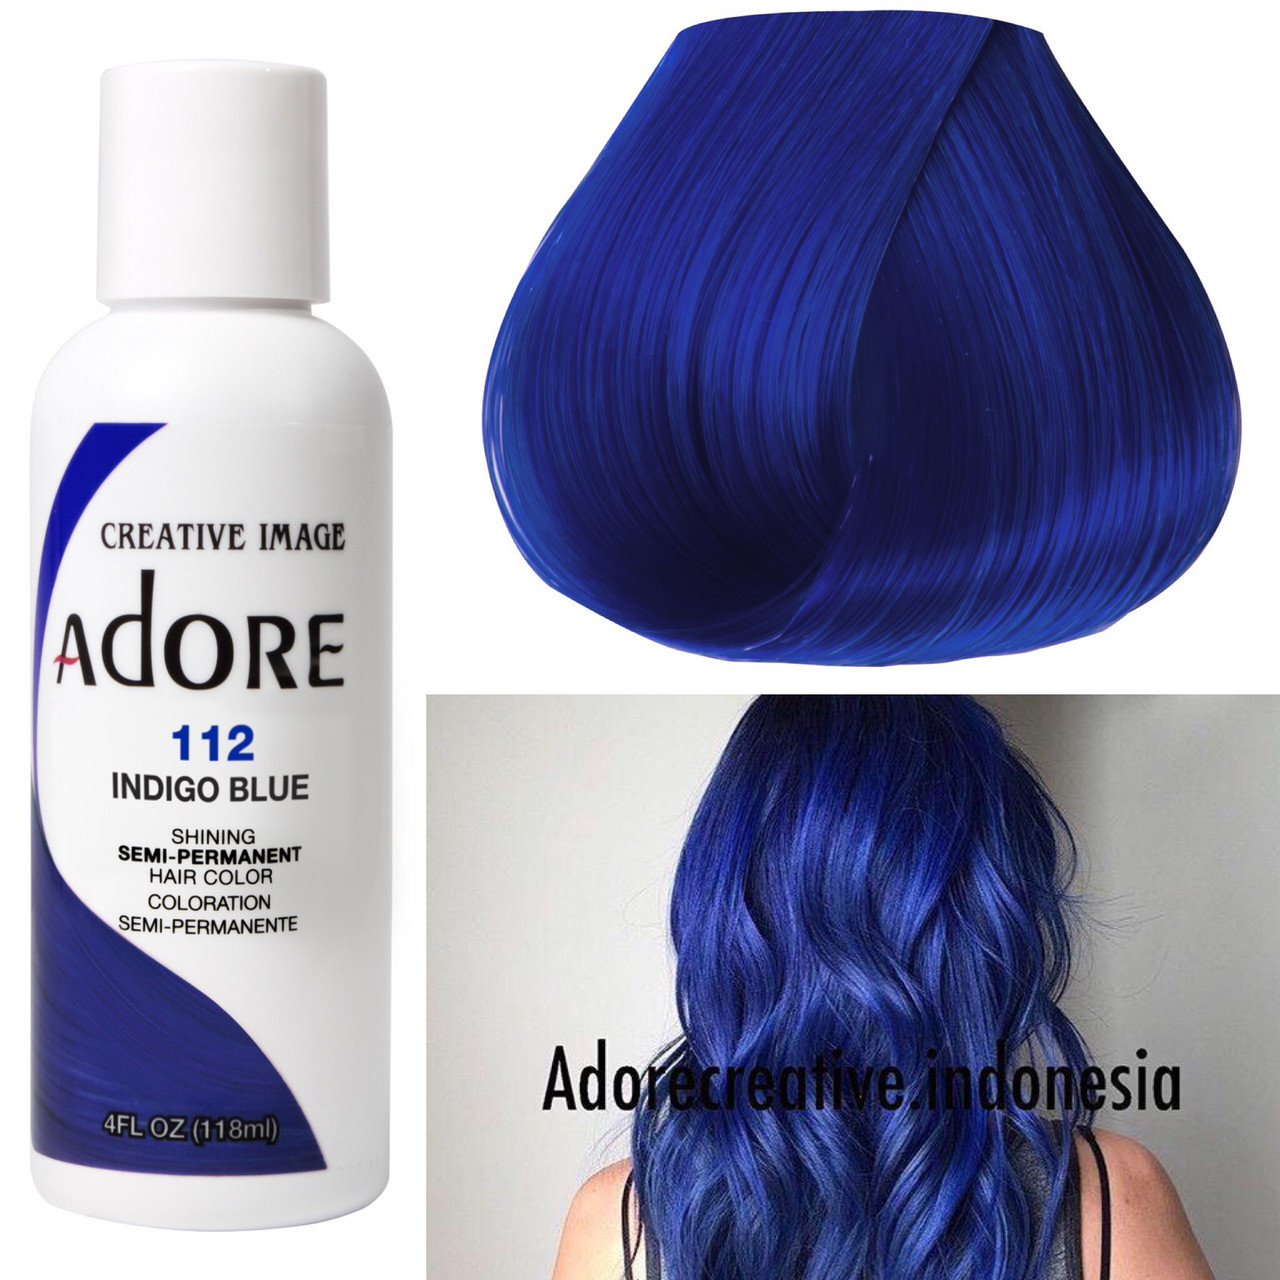 Adore Creative Image Hair Color 112 Indigo Blue Colorimage